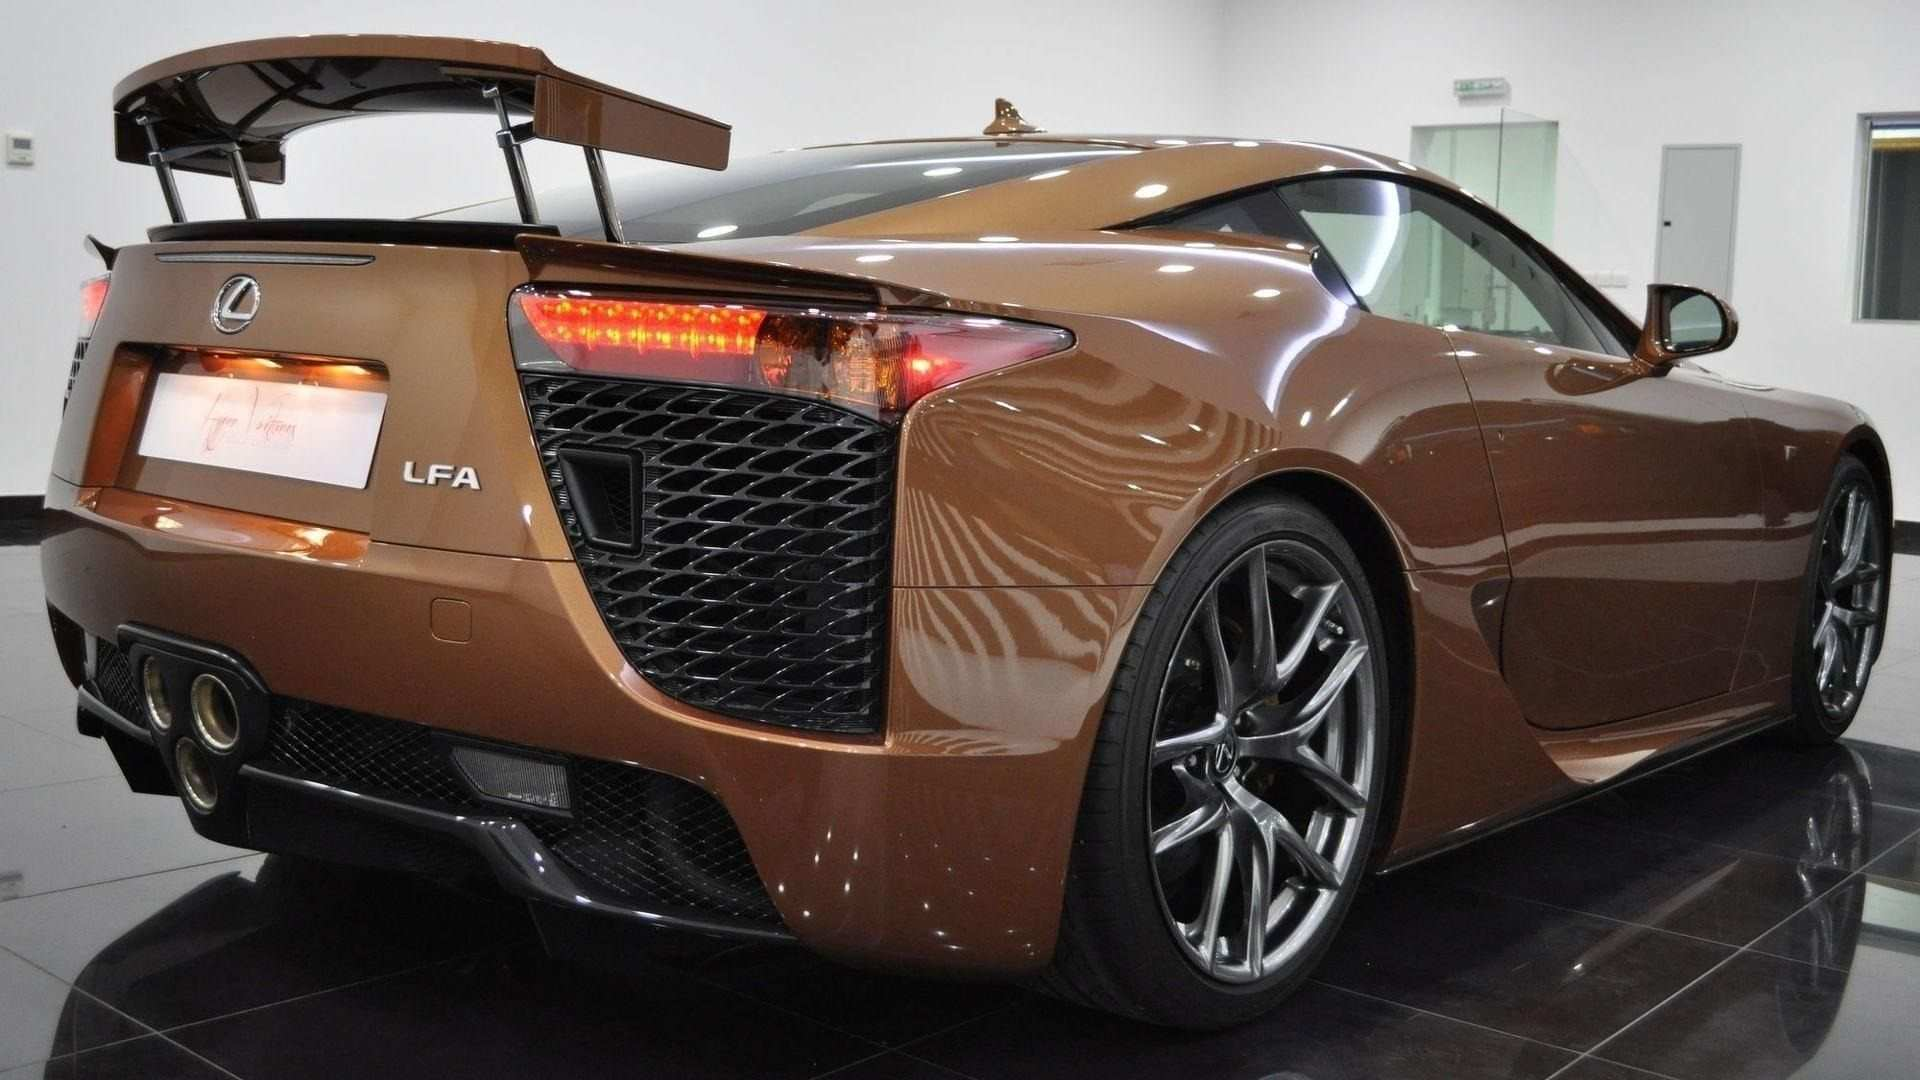 59 All New Lexus Lfa 2019 Interior